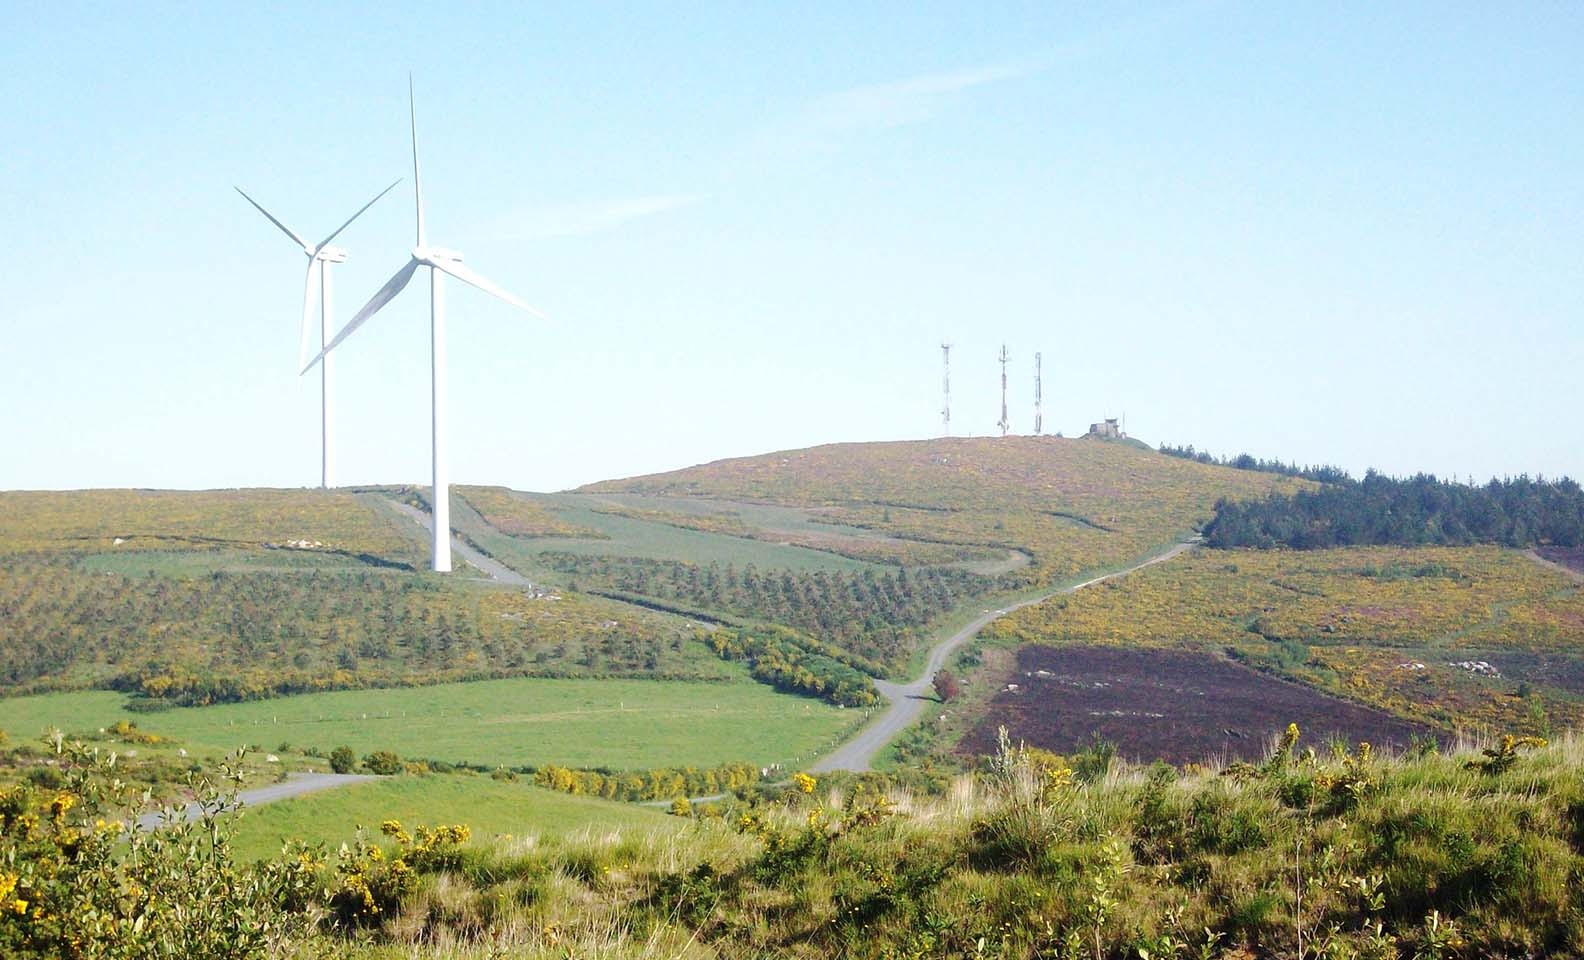 Overview of wind turbines